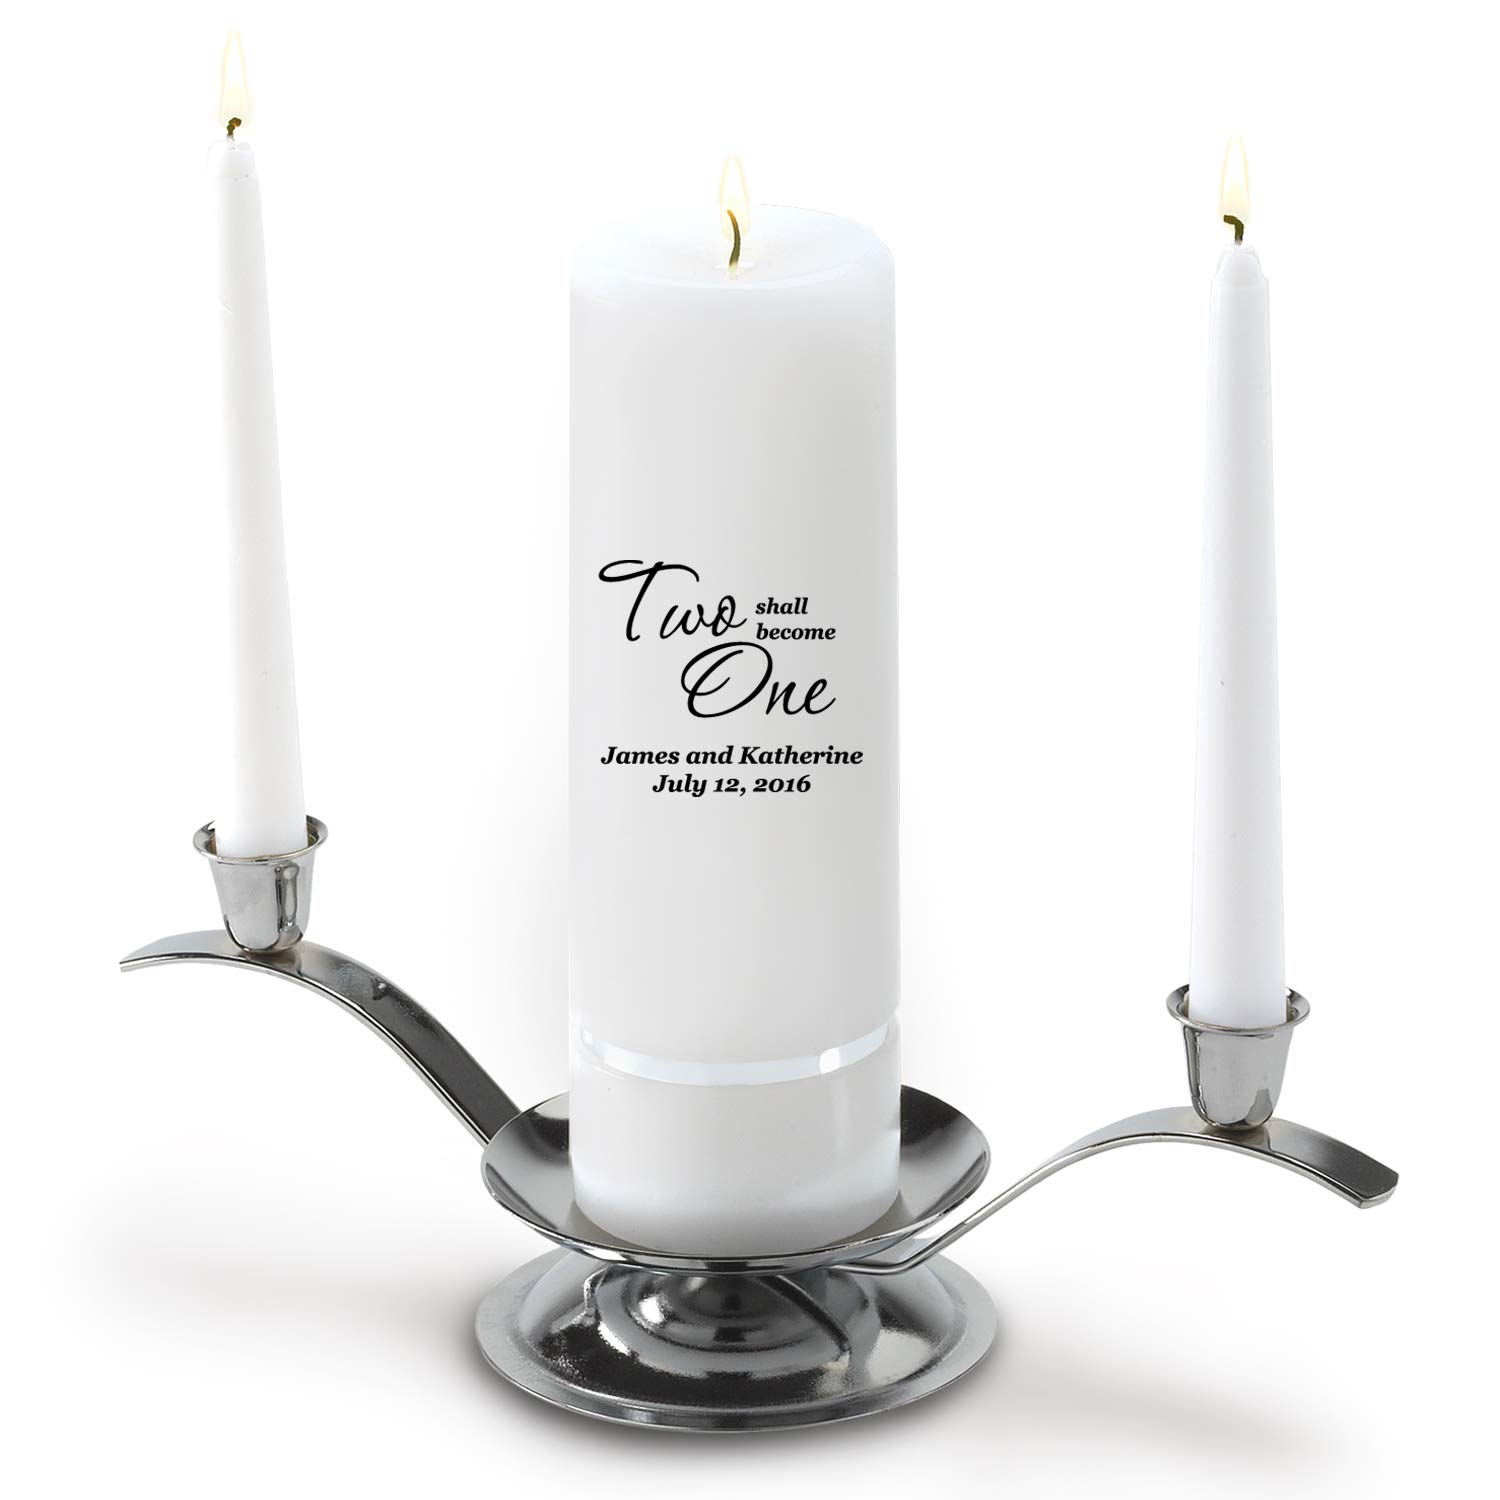 Personalized Wedding Unity Candle - Personalized Unity Candle Set - Two Shall Become One